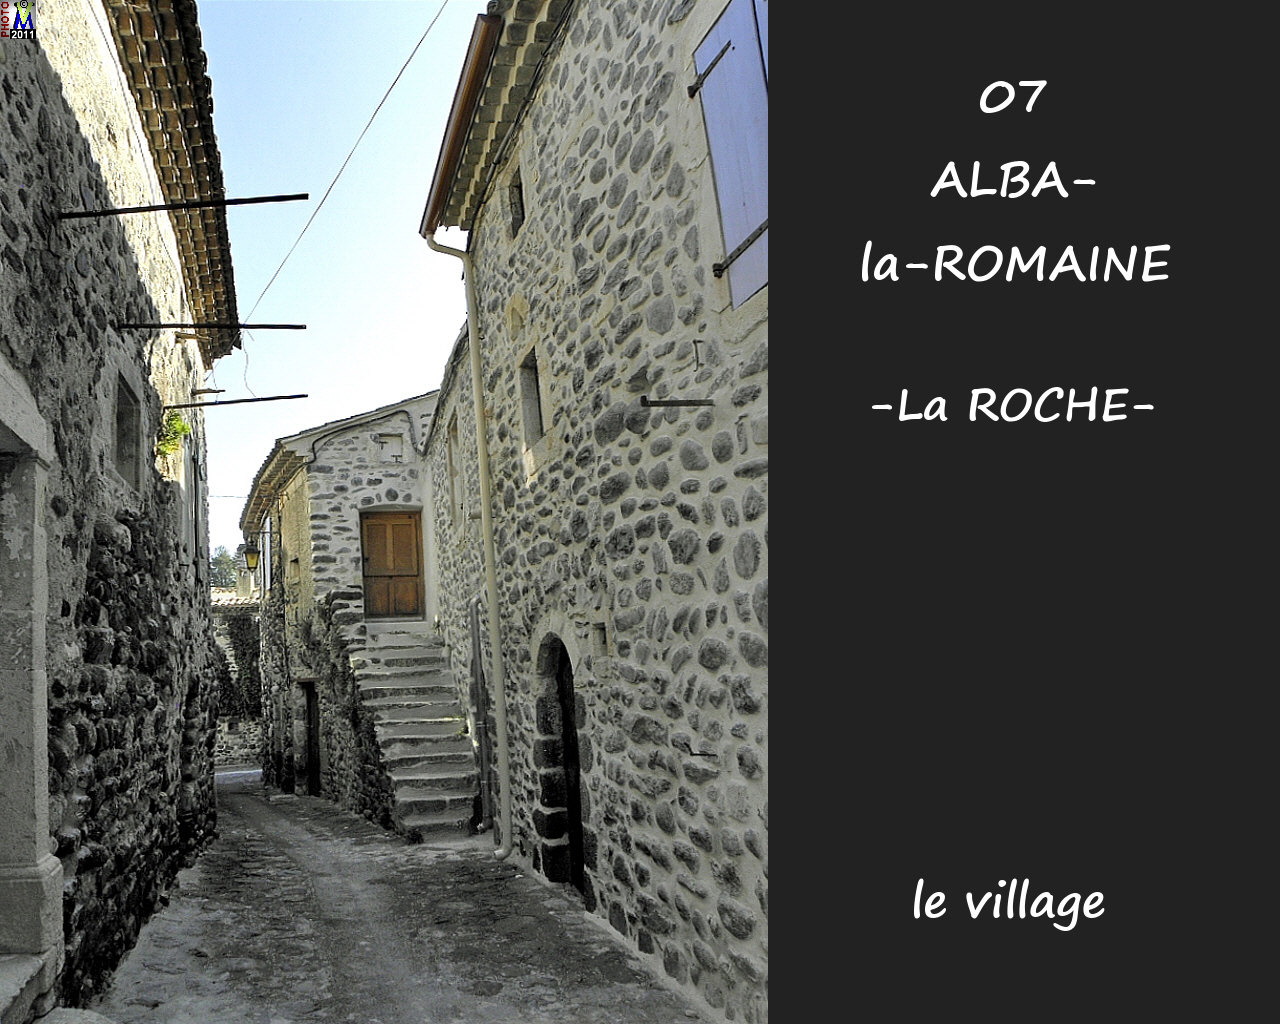 07ALBA-ROMAINEzROCHE_village_104.jpg